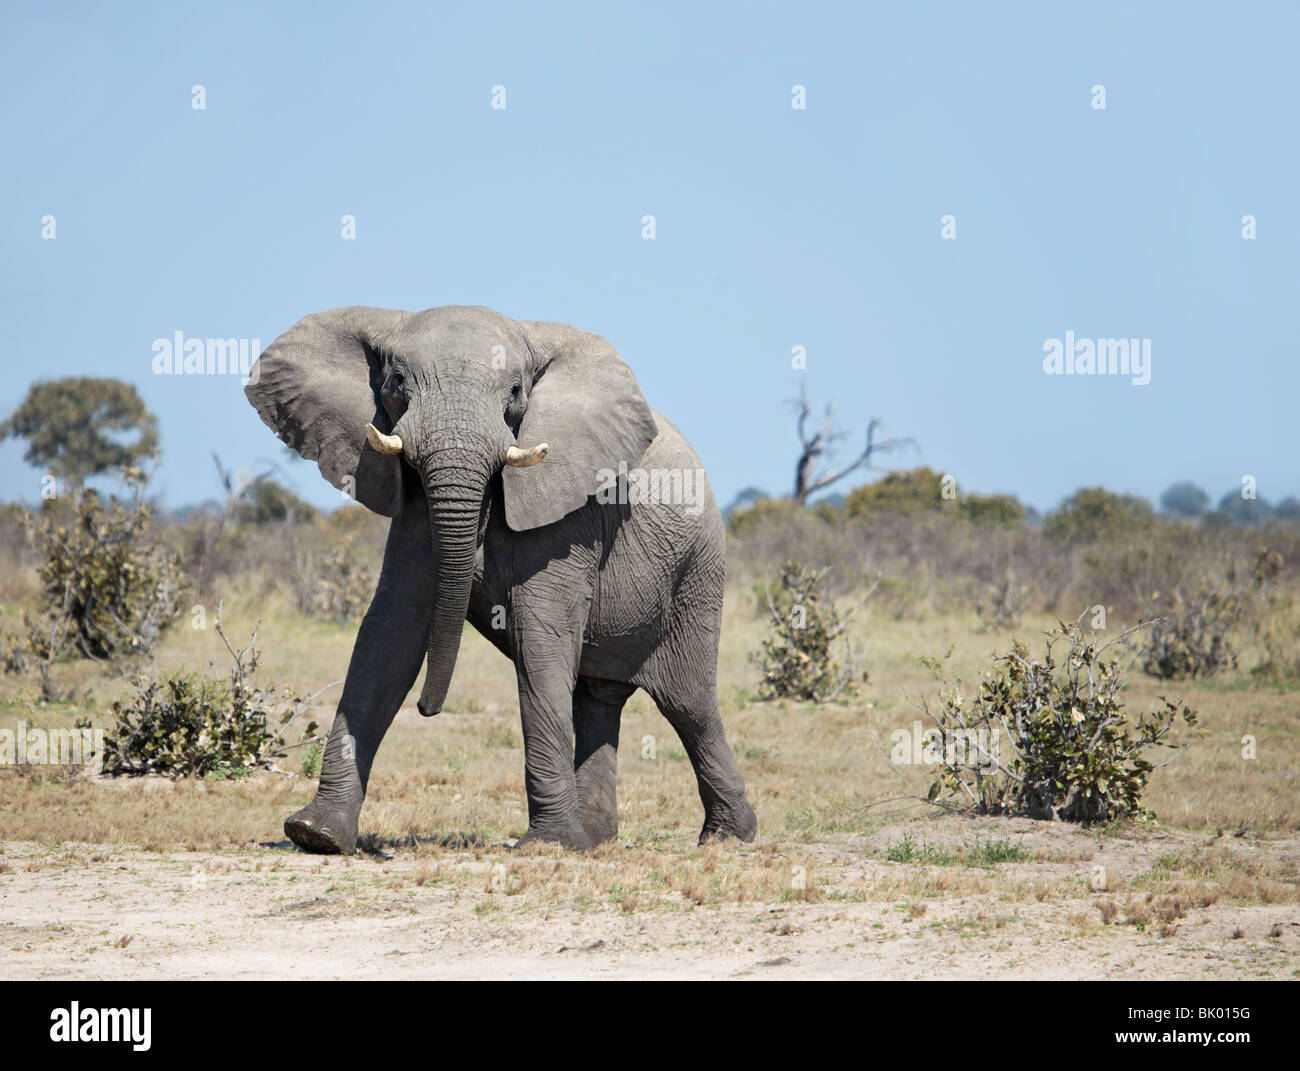 Adult male African Elephant posing in a 'mock charge' - Stock Image